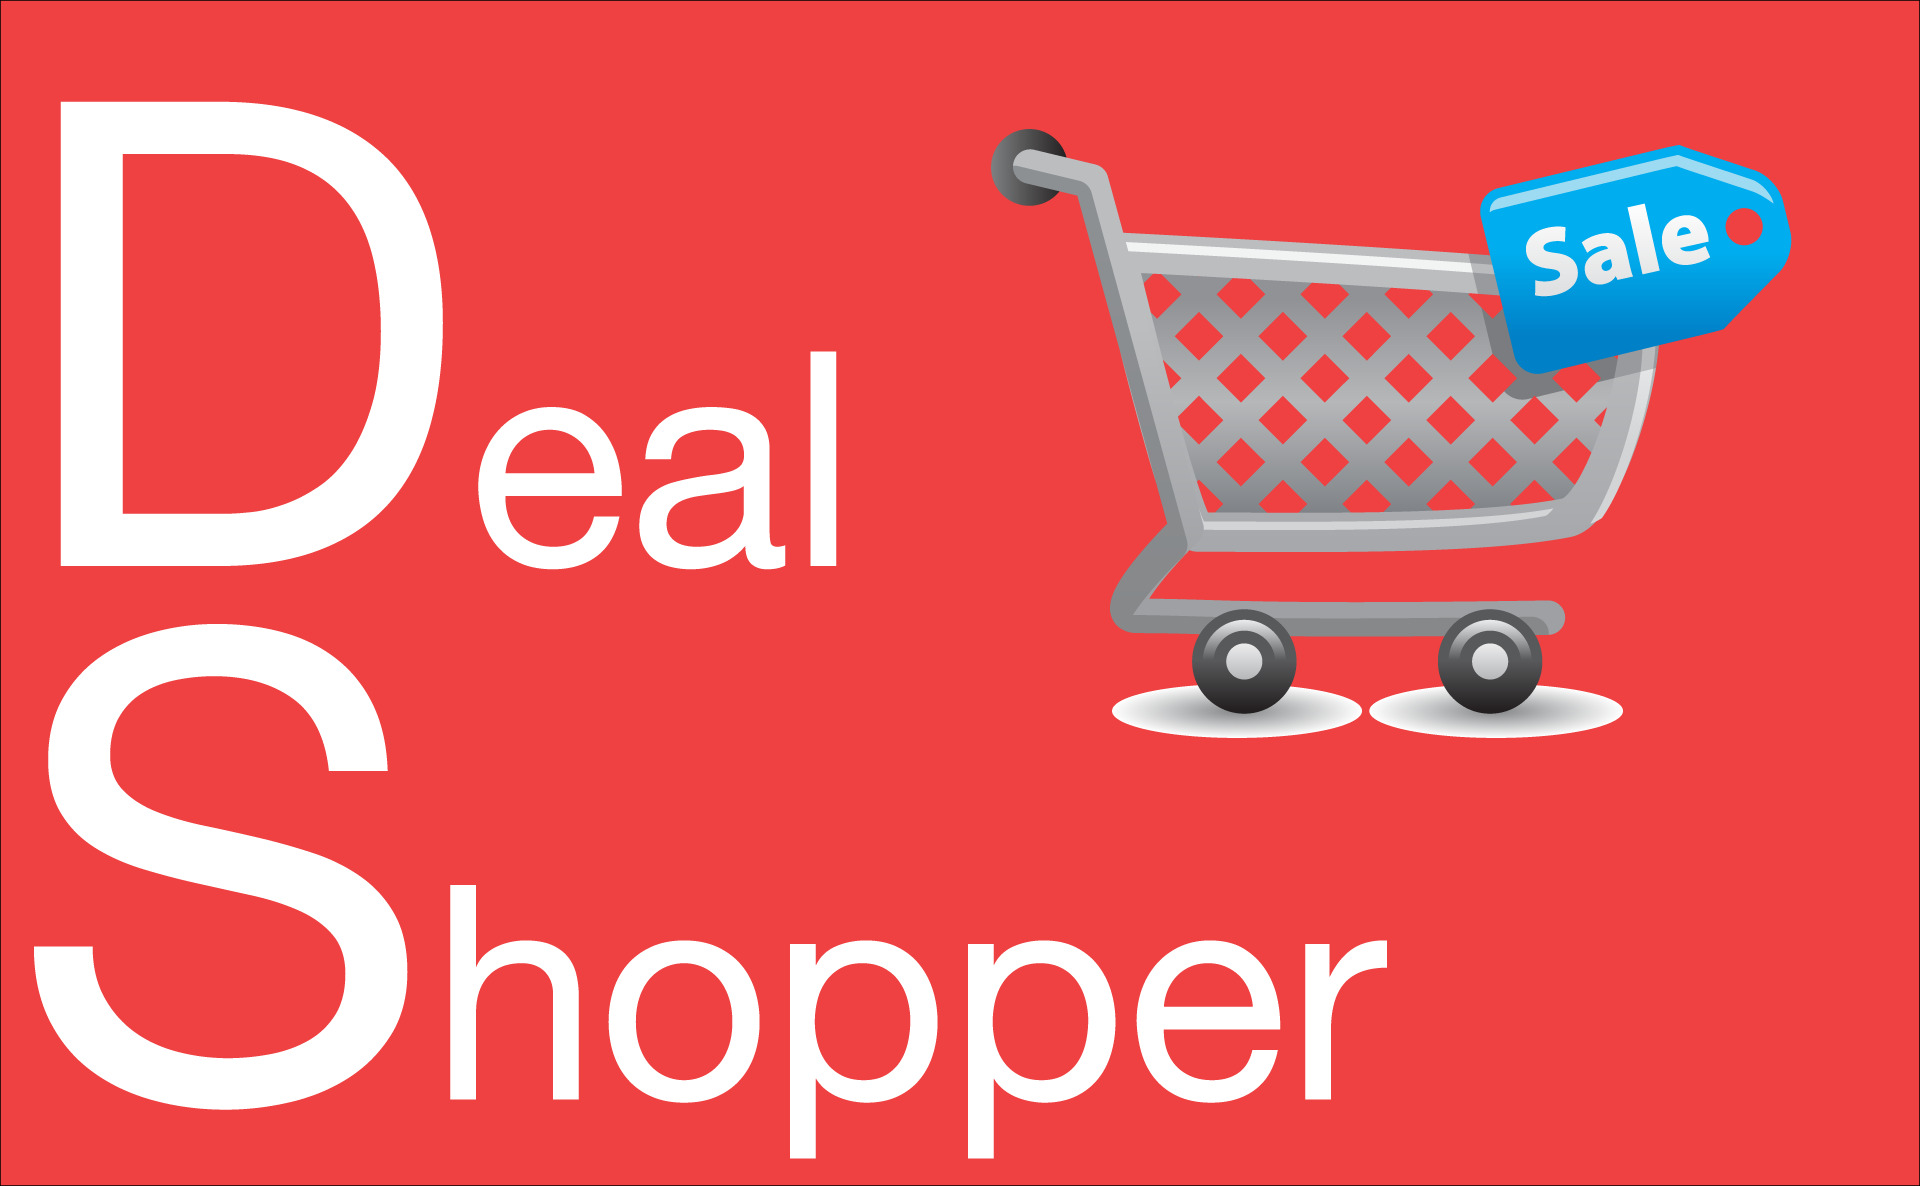 dealshopper-featured-image